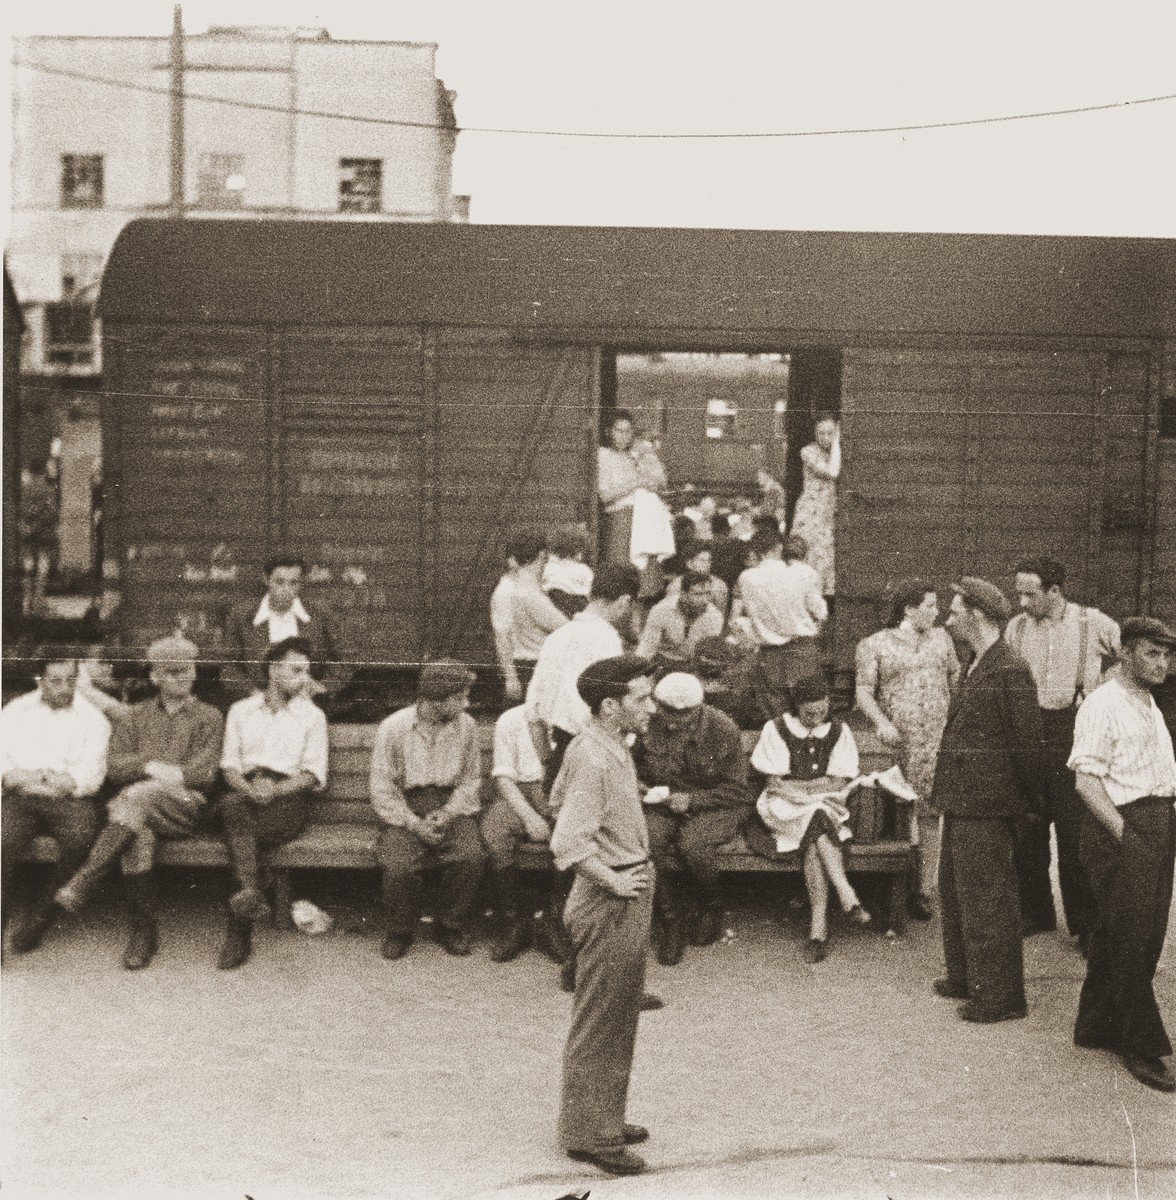 A group of Jewish DPs traveling along the Bricha route to the American Zone of Germany, board a box car at the Vienna railroad station.